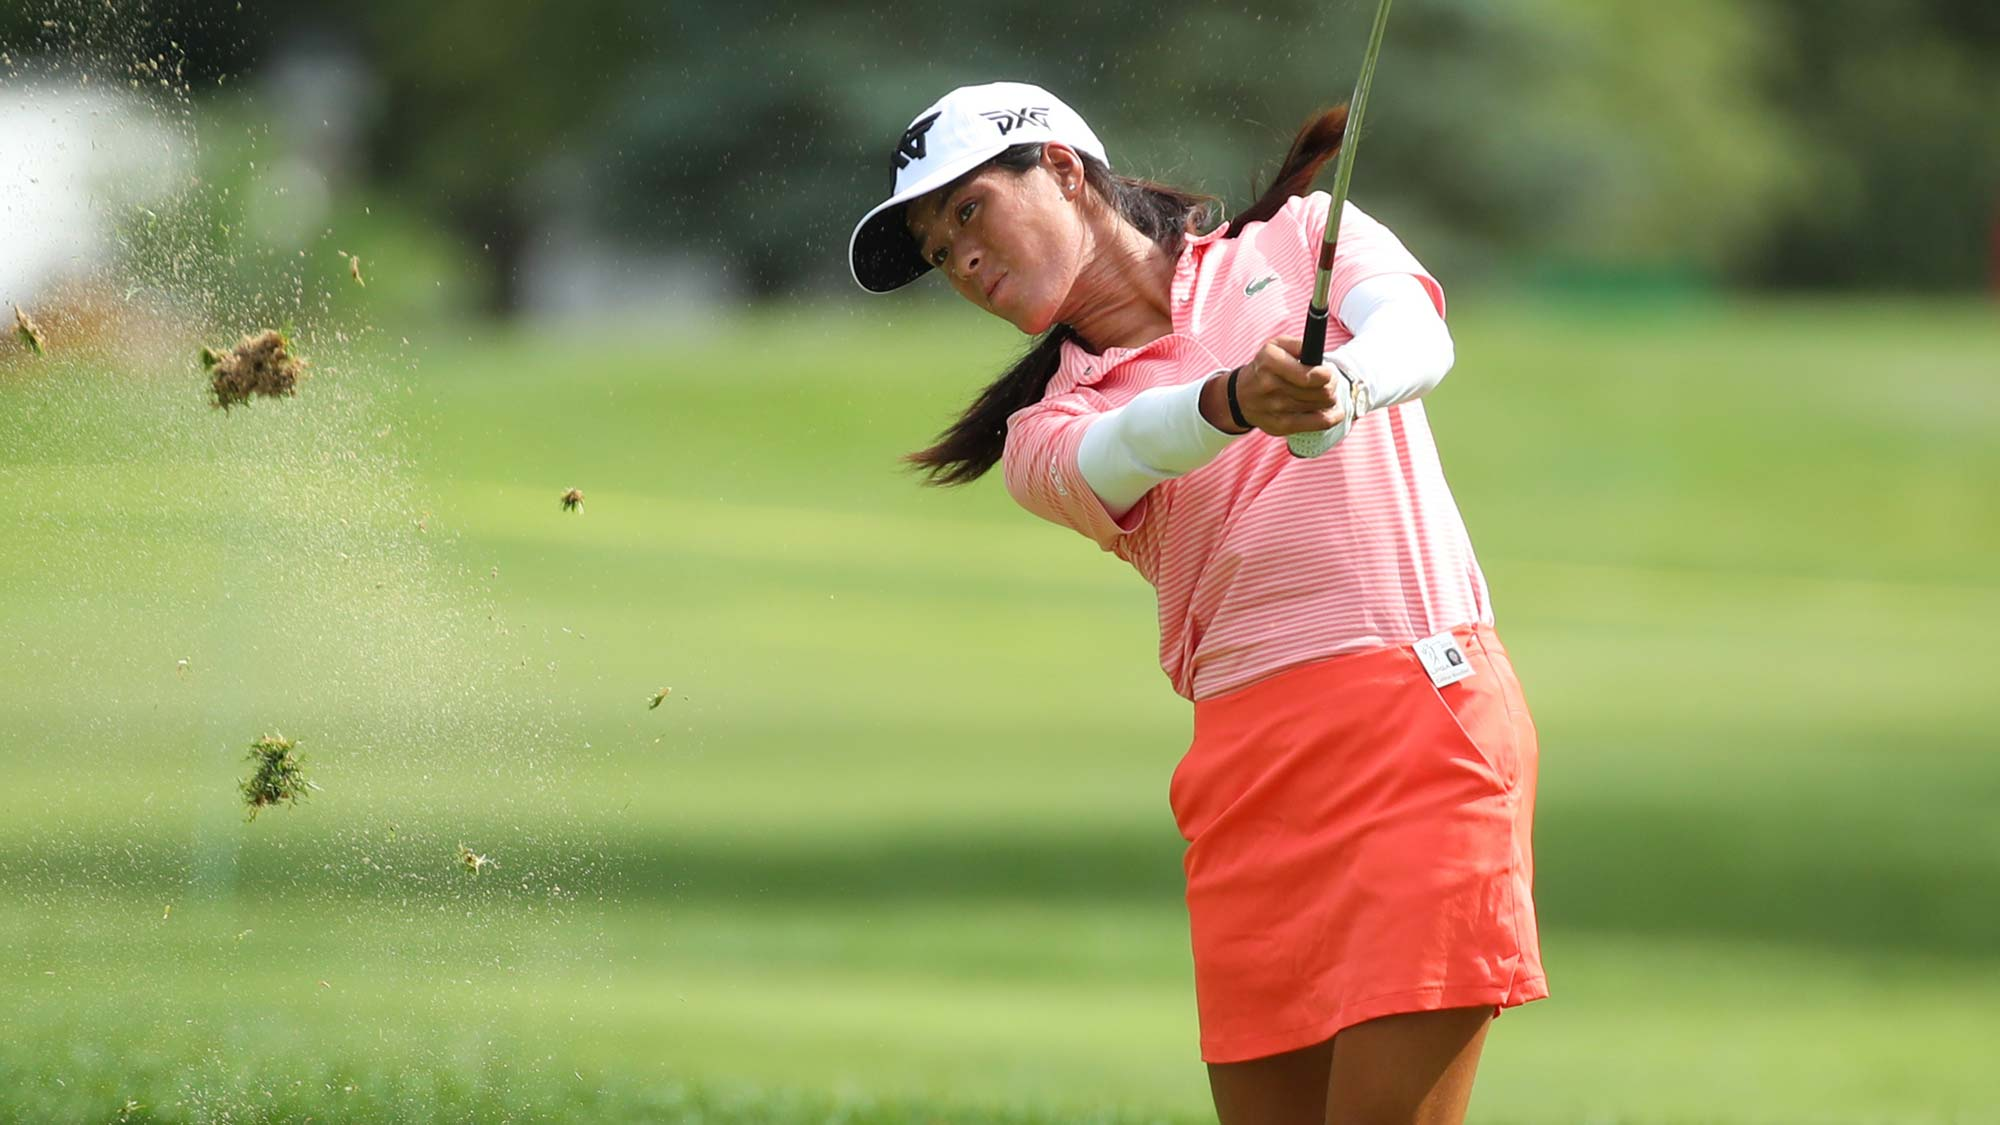 Celine Boutier of France watches second shot on the 17th hole during round two of the Dow Great Lakes Bay Invitational